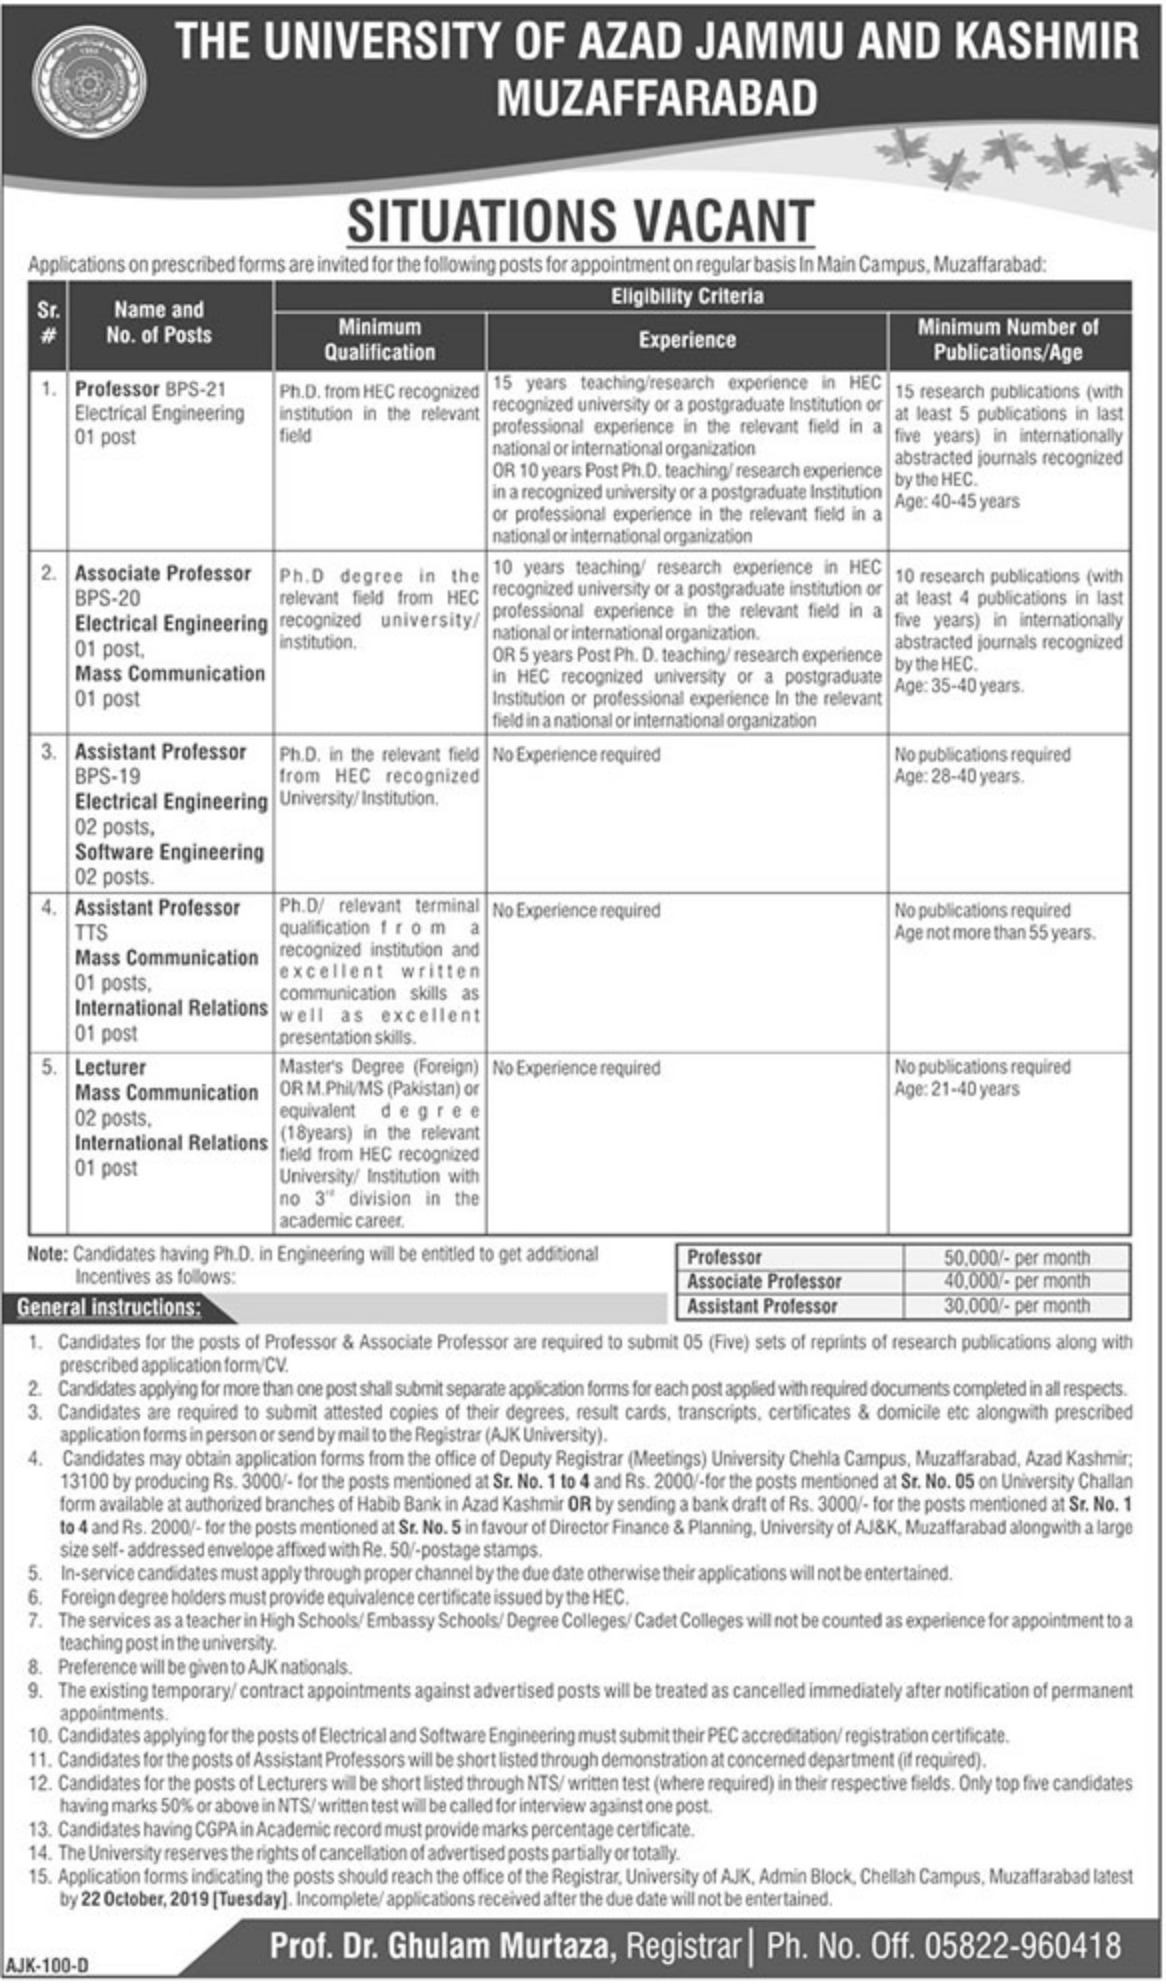 The University of Azad Jammu & Kashrmir Jobs 2019 AJK Muzaffarbad